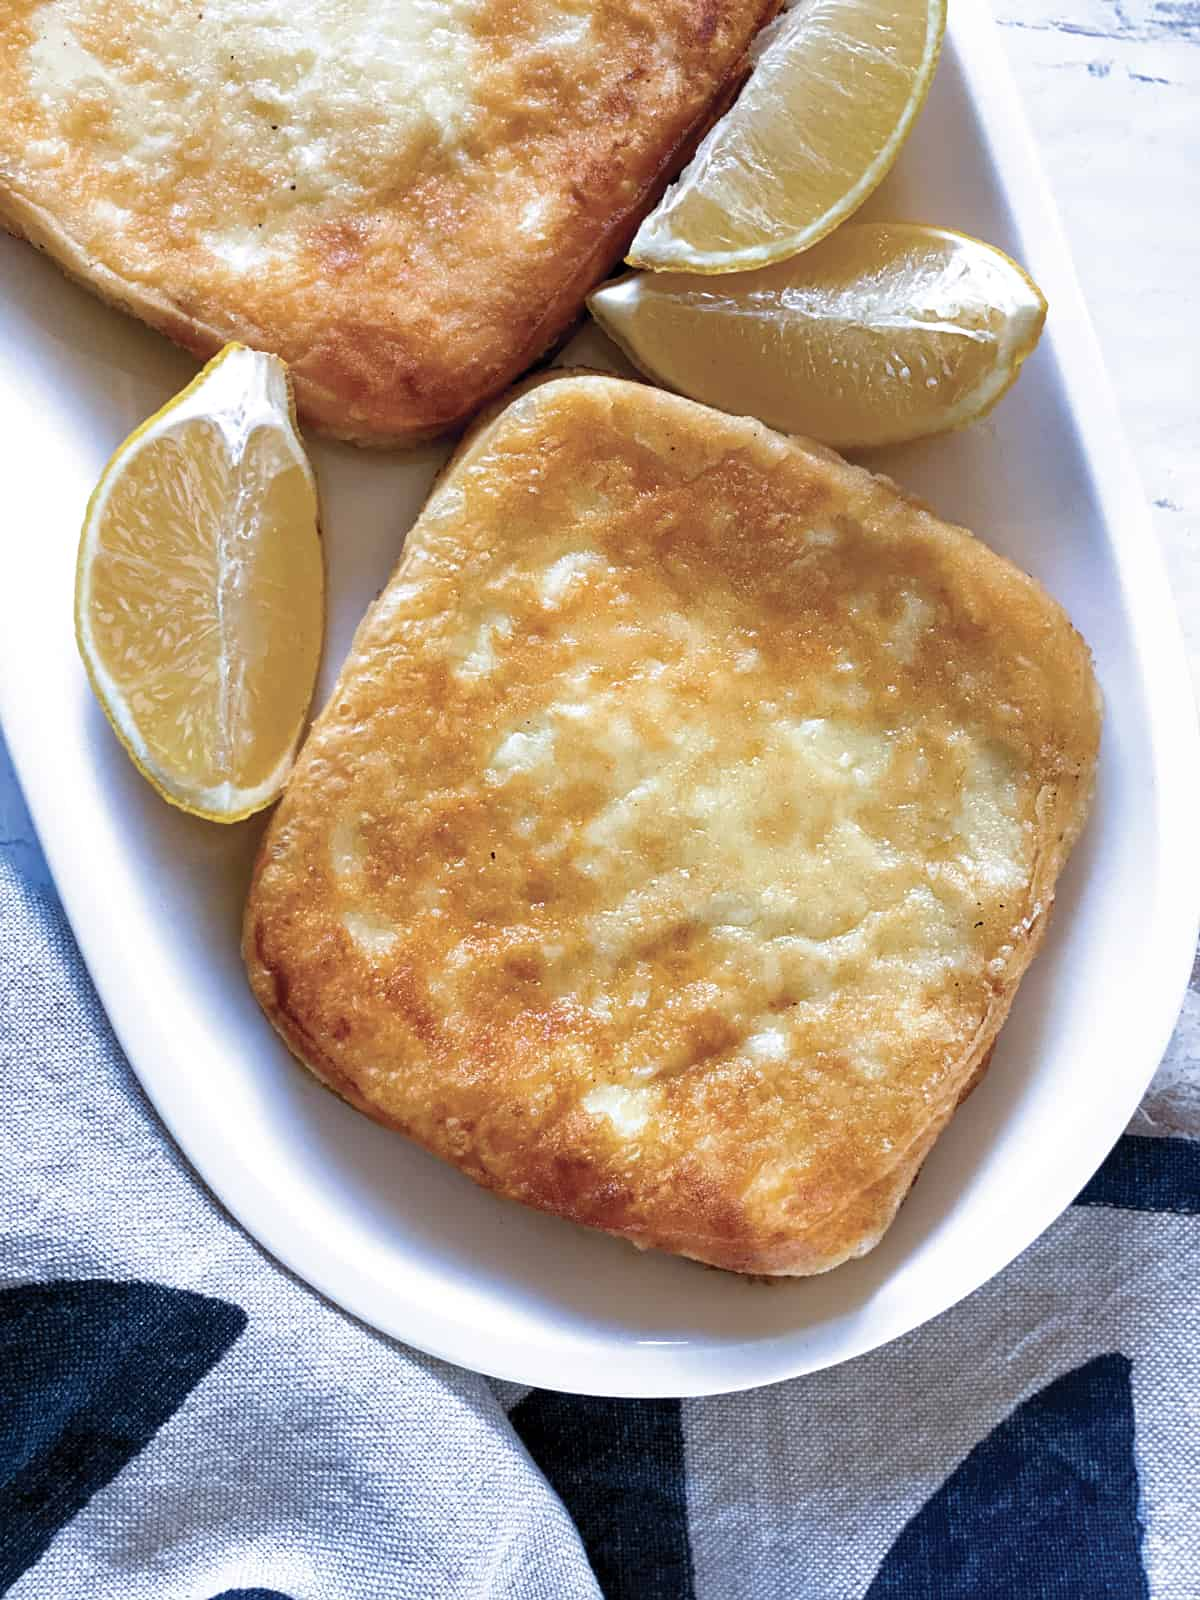 Two pieces of fried cheese on a plate, lemon wedges and a cloth napkin.